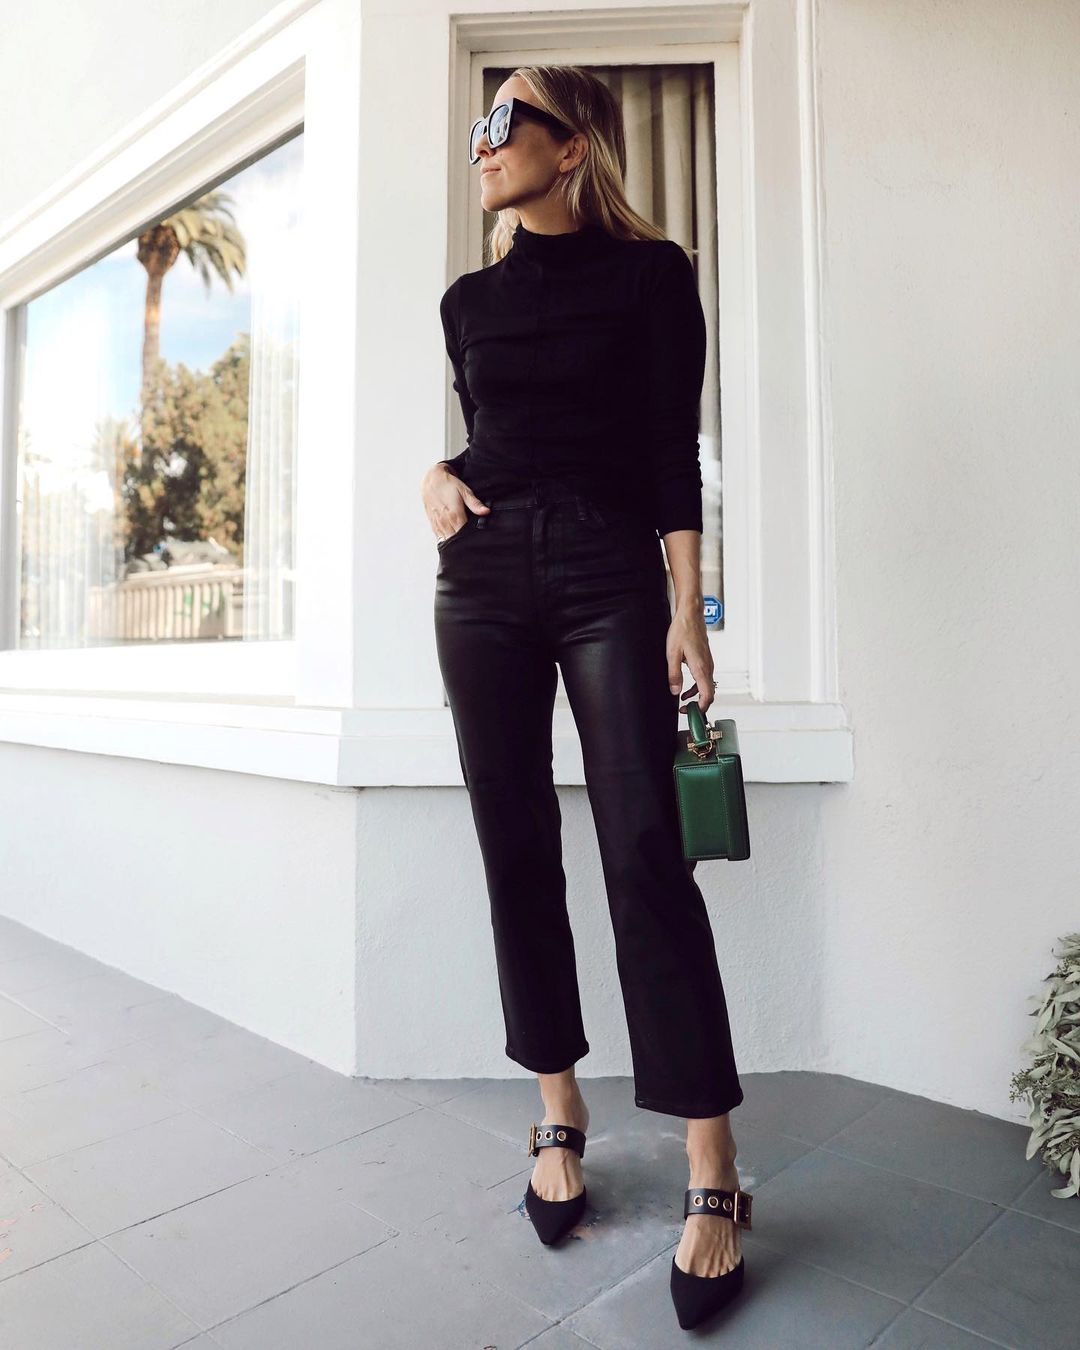 Instagram star Jacey Duprie in an all-black outfit idea with turtleneck faux leather jeans, and pointed-toe mule heels